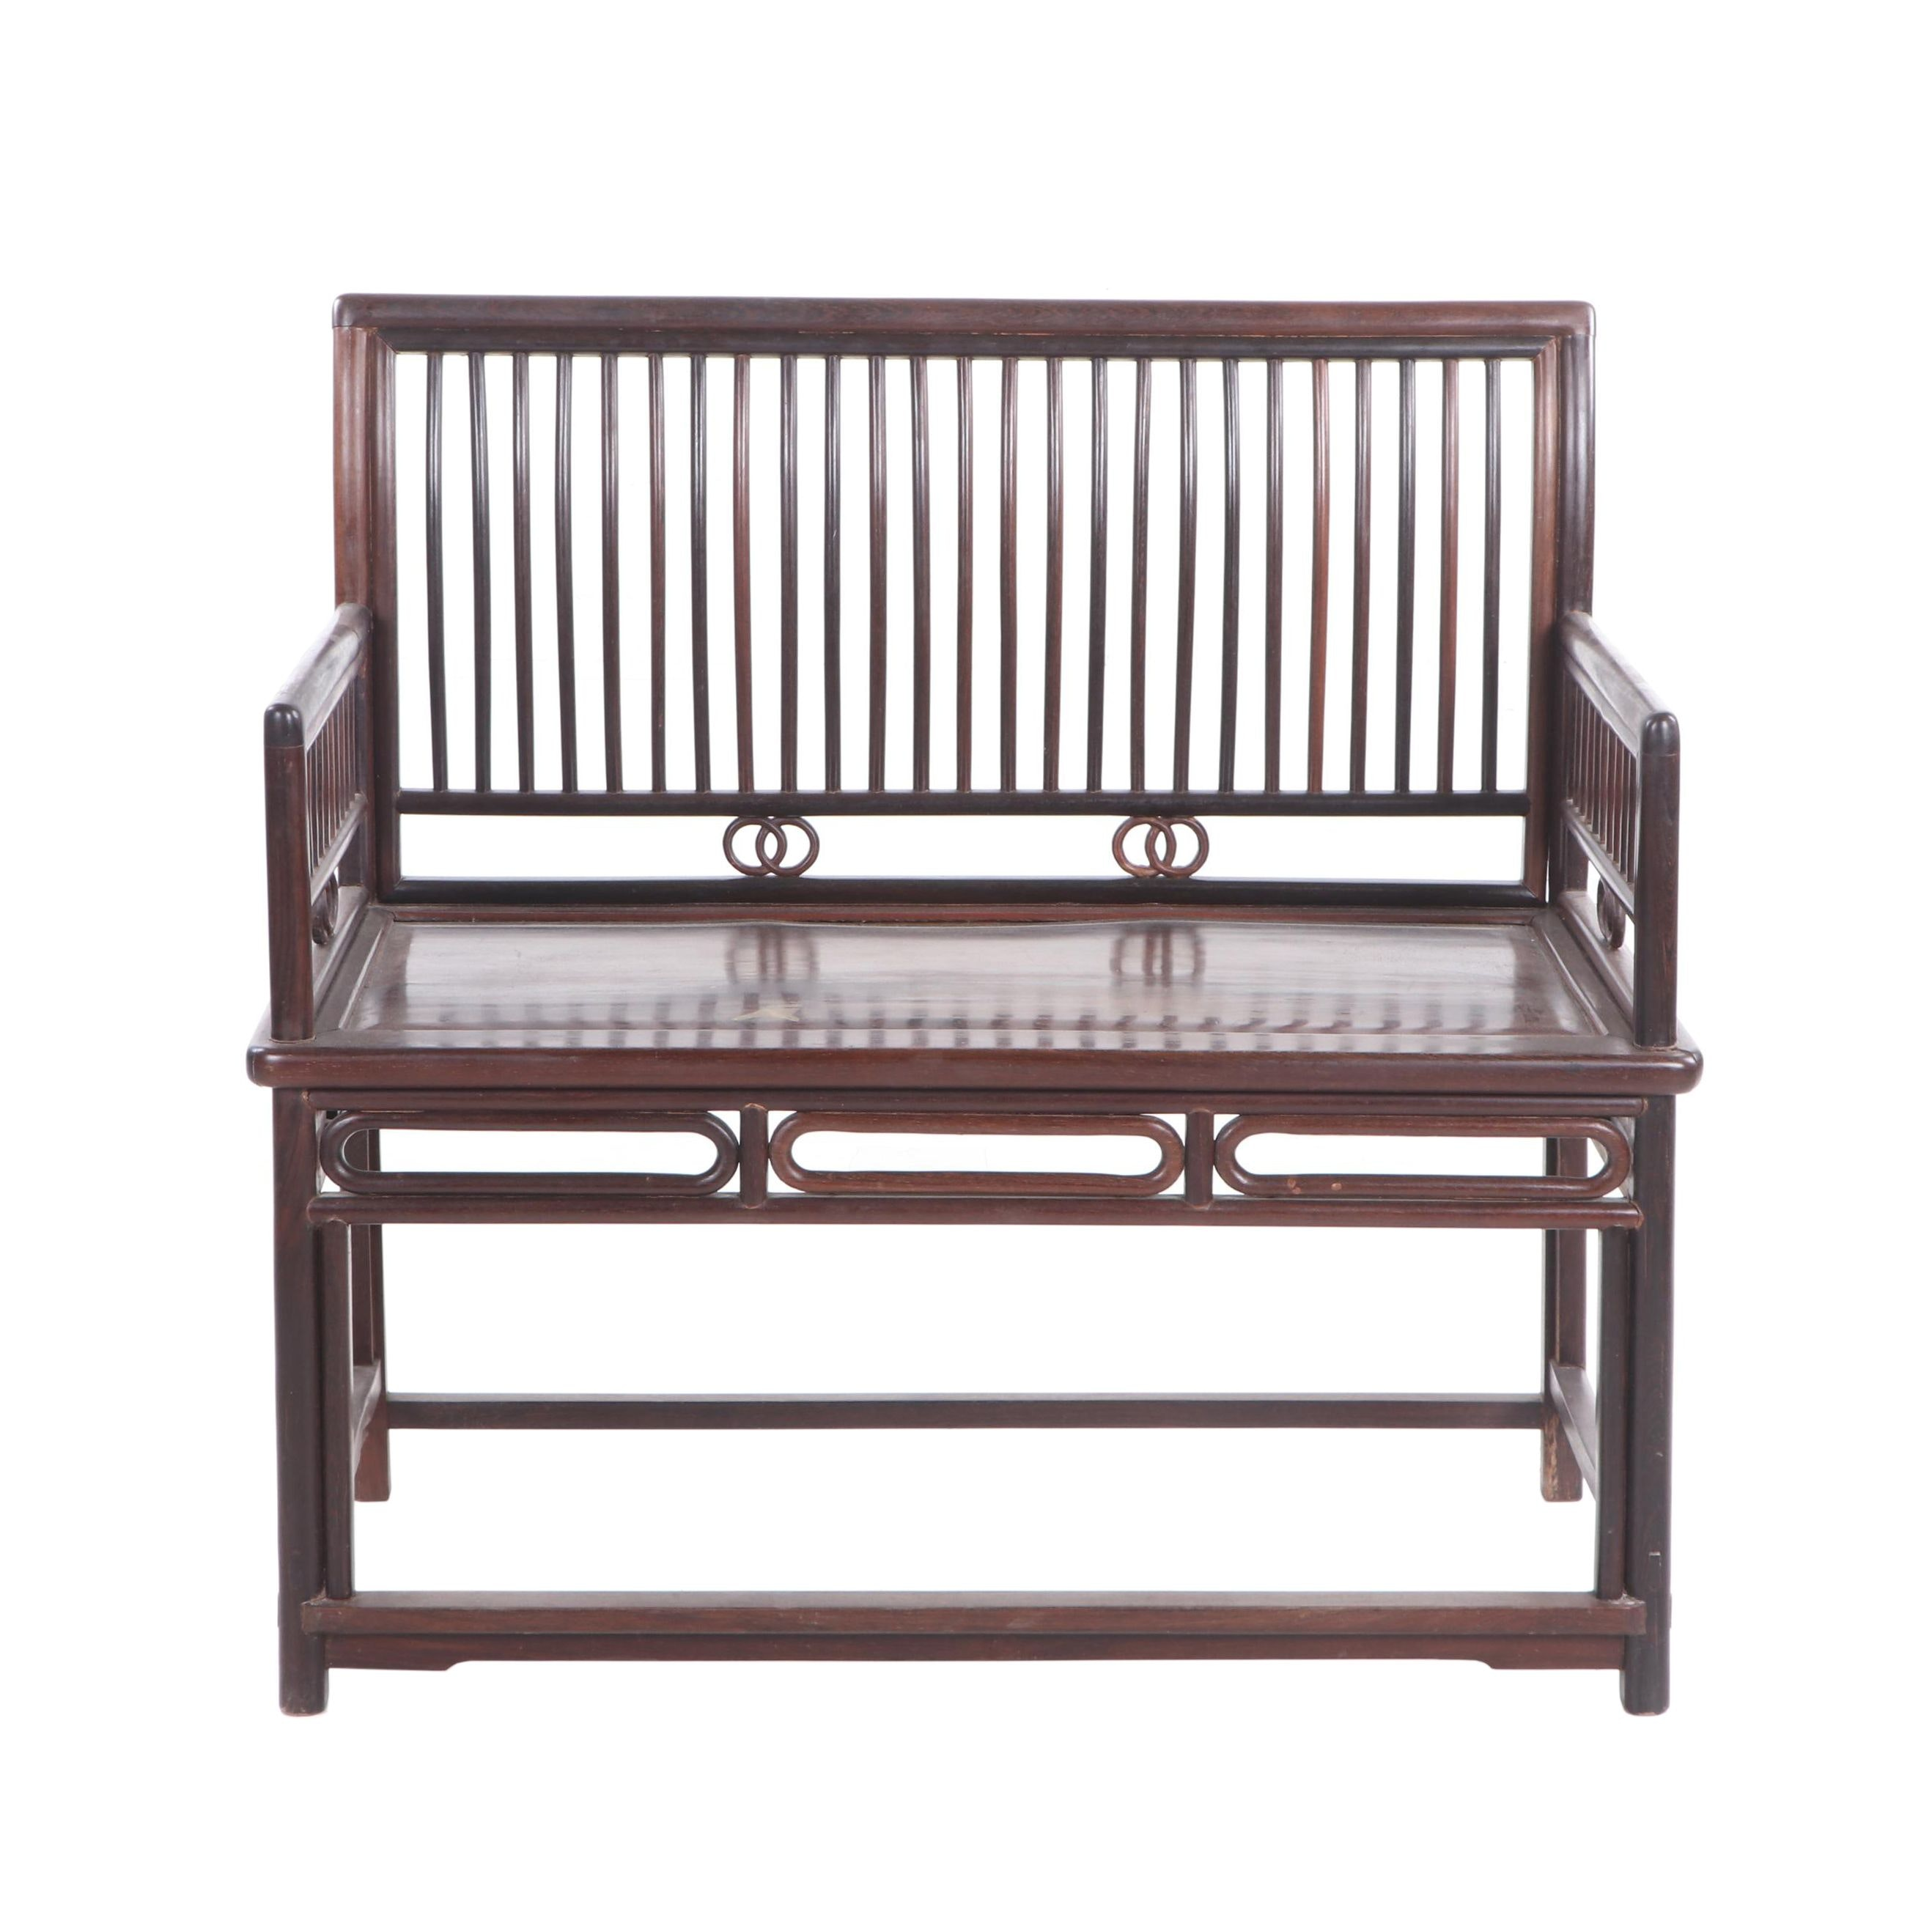 Chinese Style Wood Hall Bench, Contemporary